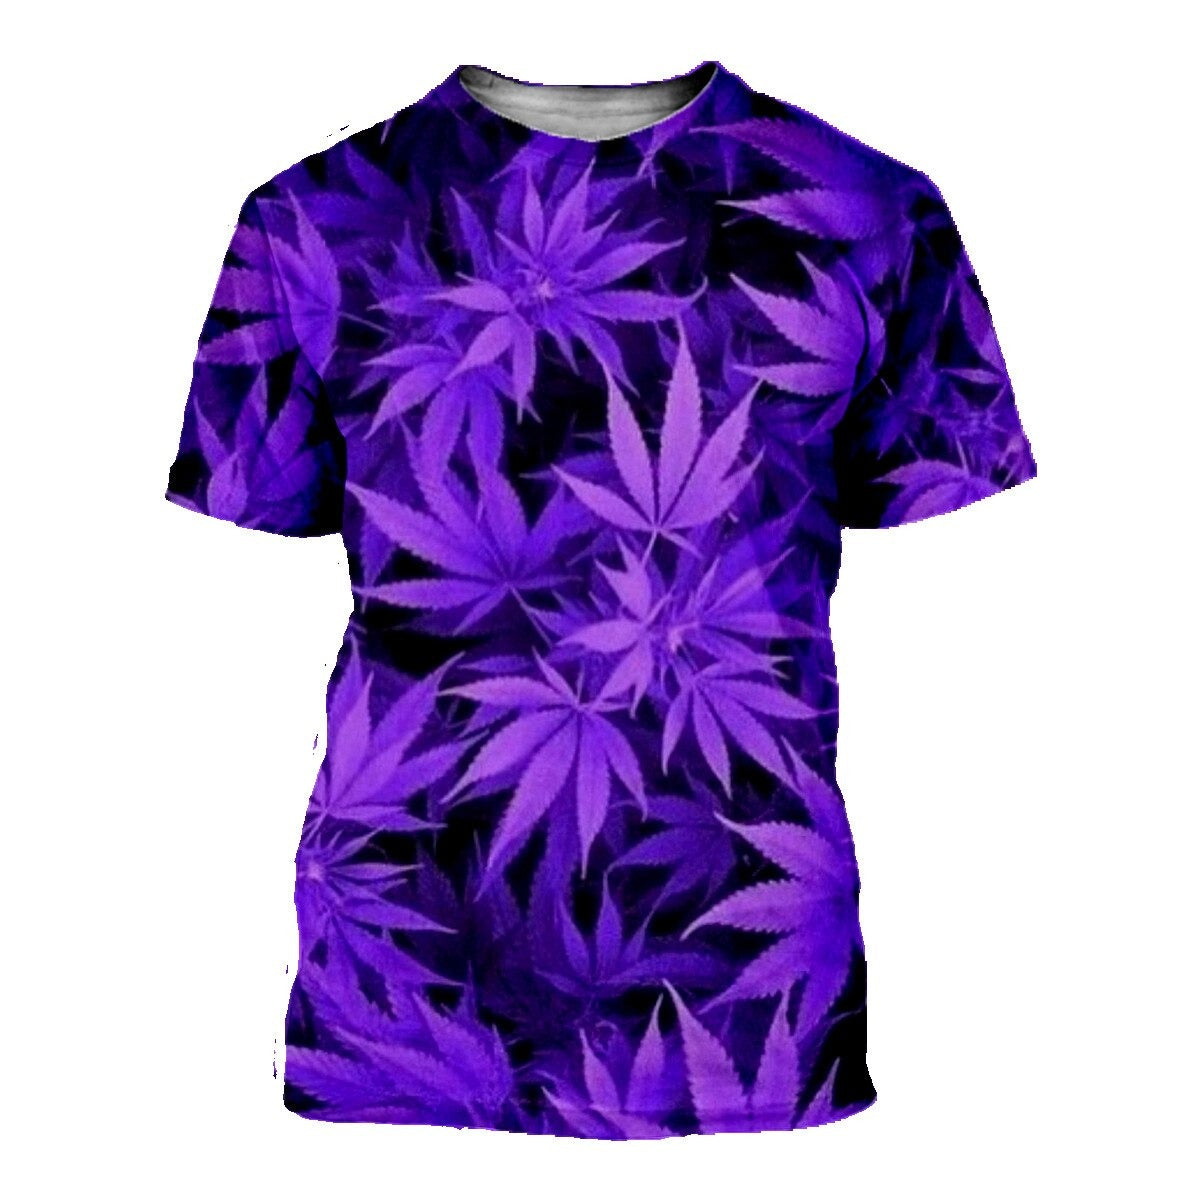 t shirt Smoke Weeds purple dream<br>3D Digital Print <br>Rastafari Market®